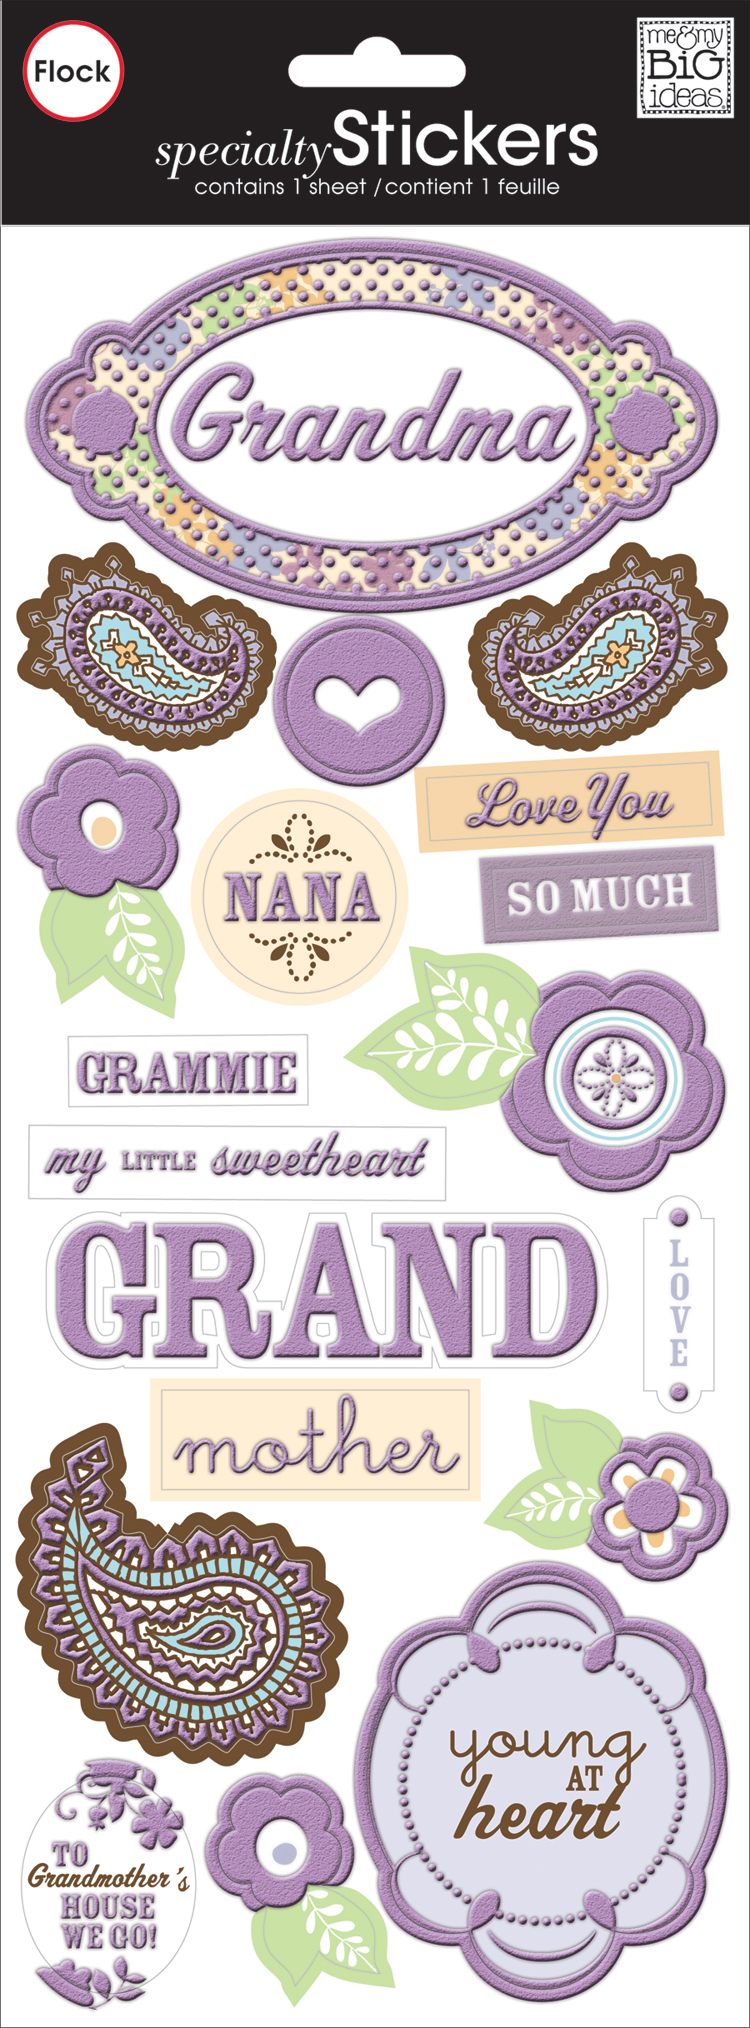 Rachel Grandma Specialty Sticker